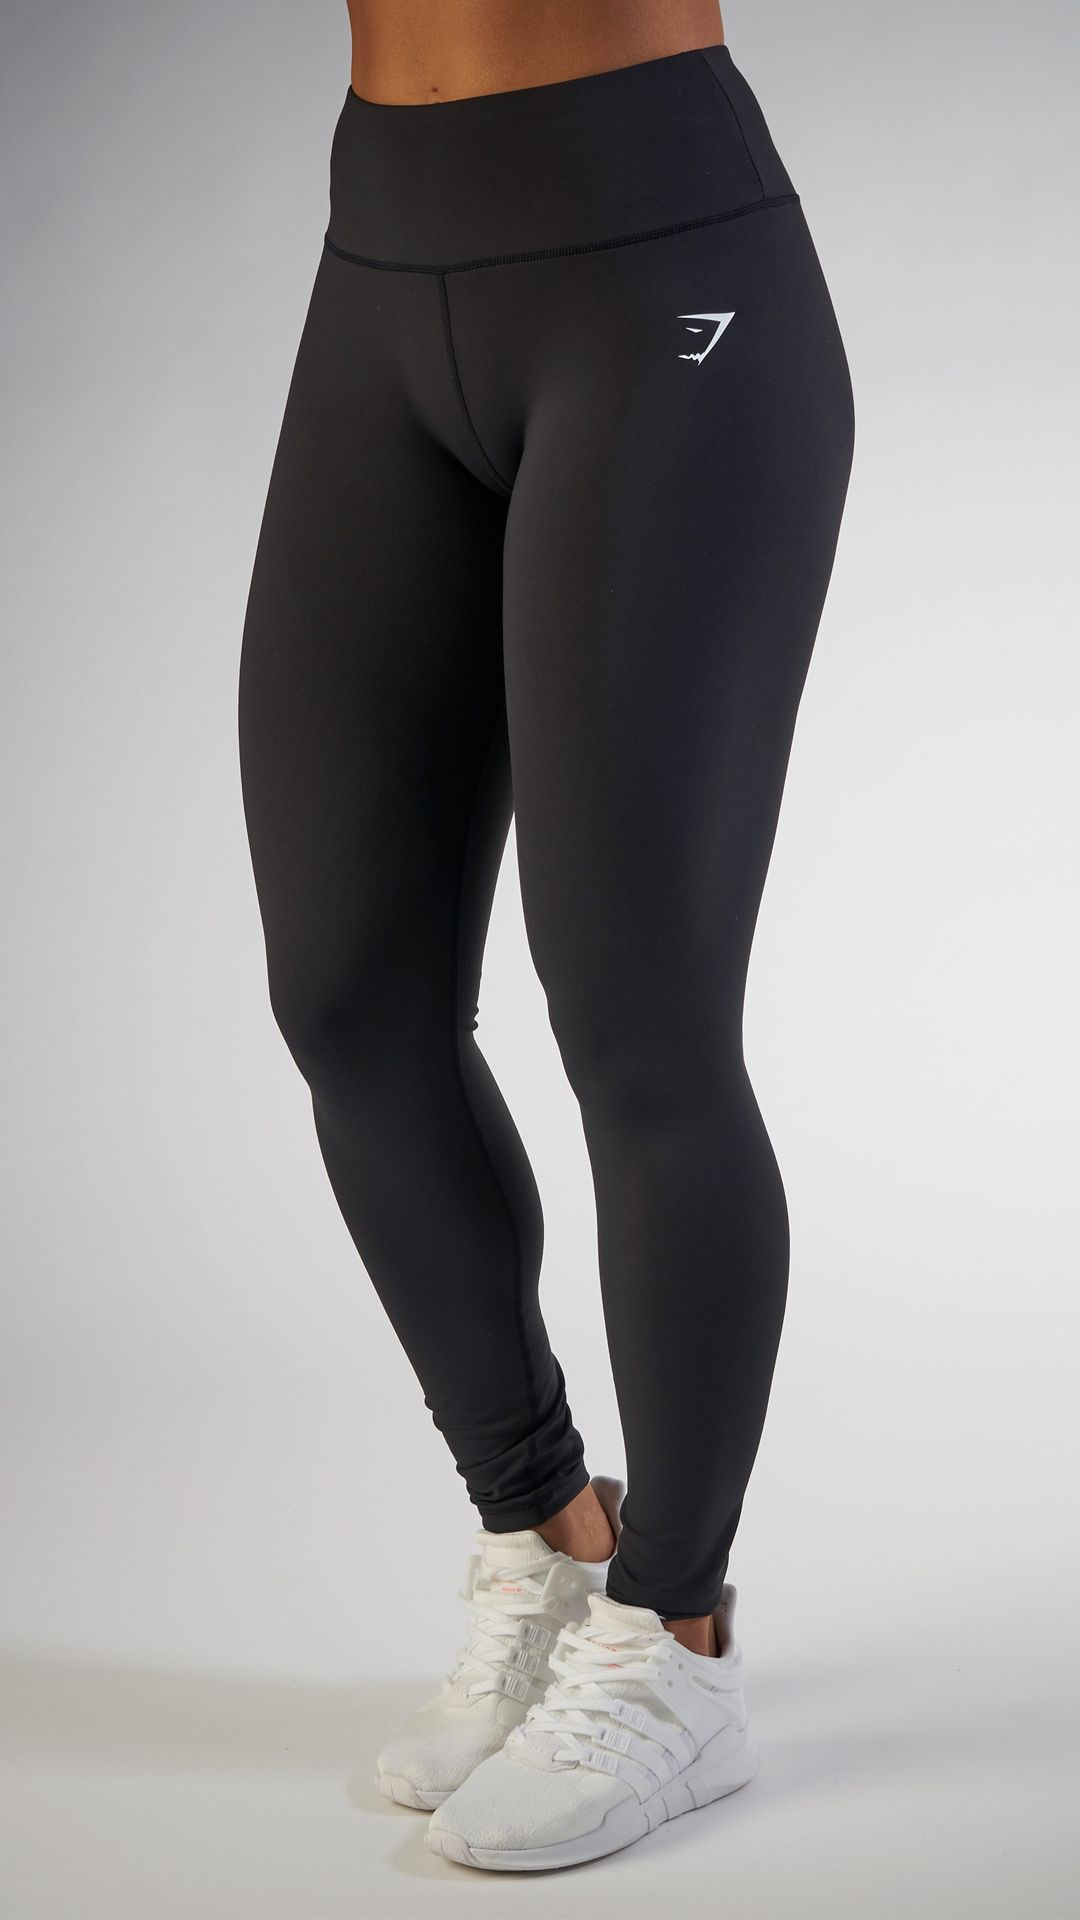 bfb3f02532 Give your legs their most comfortable workout yet. The Women's Dreamy  Leggings are so soft; they almost feel unreal.